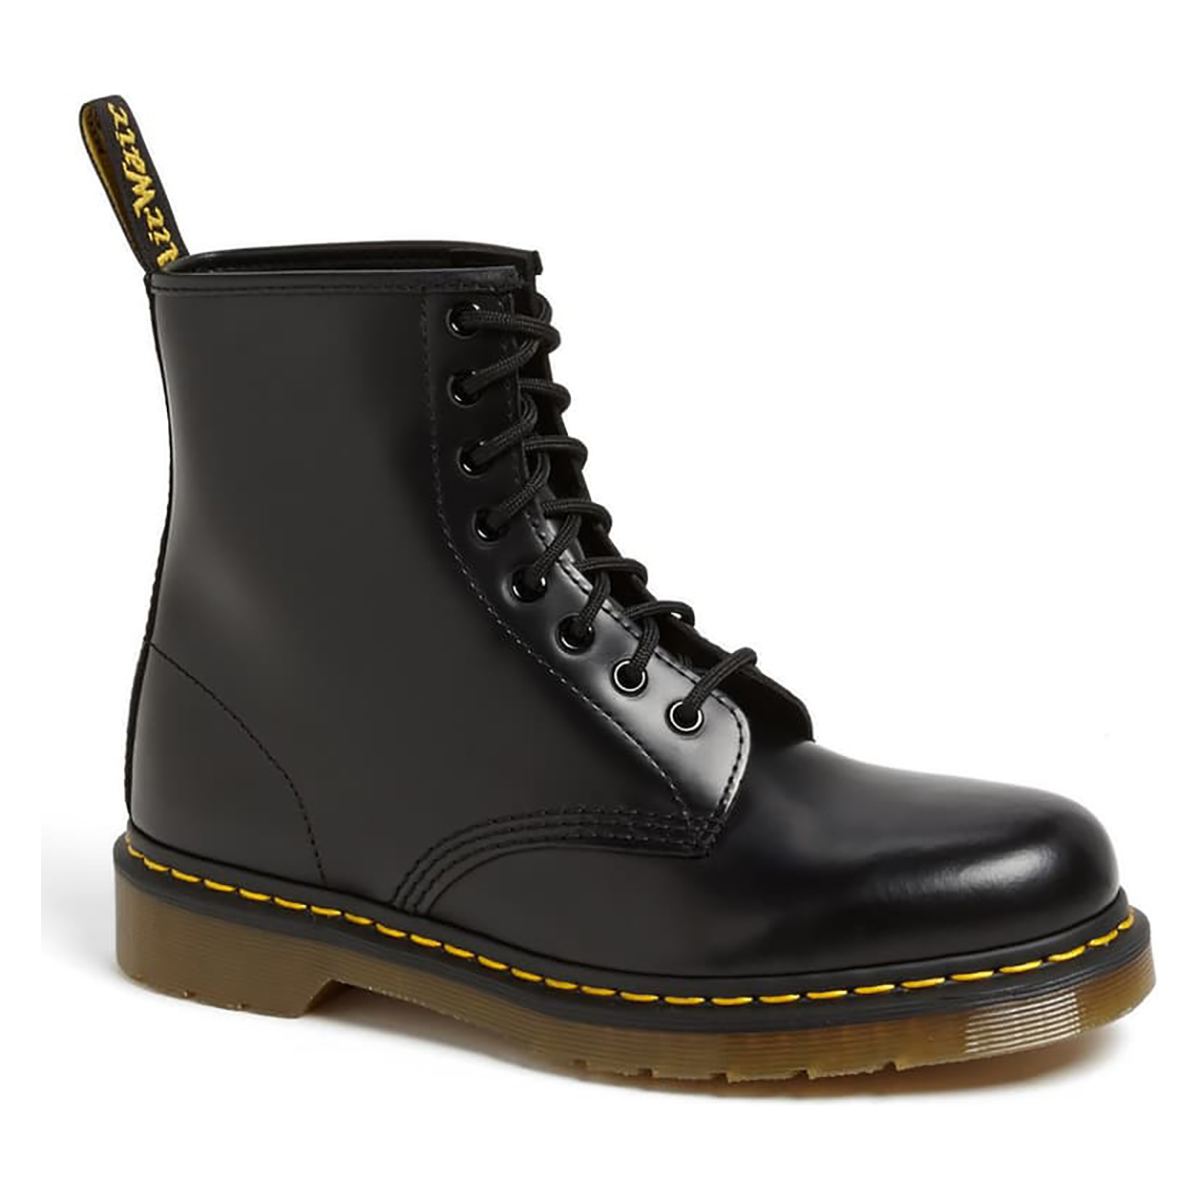 '1460' Boot DR. MARTENS